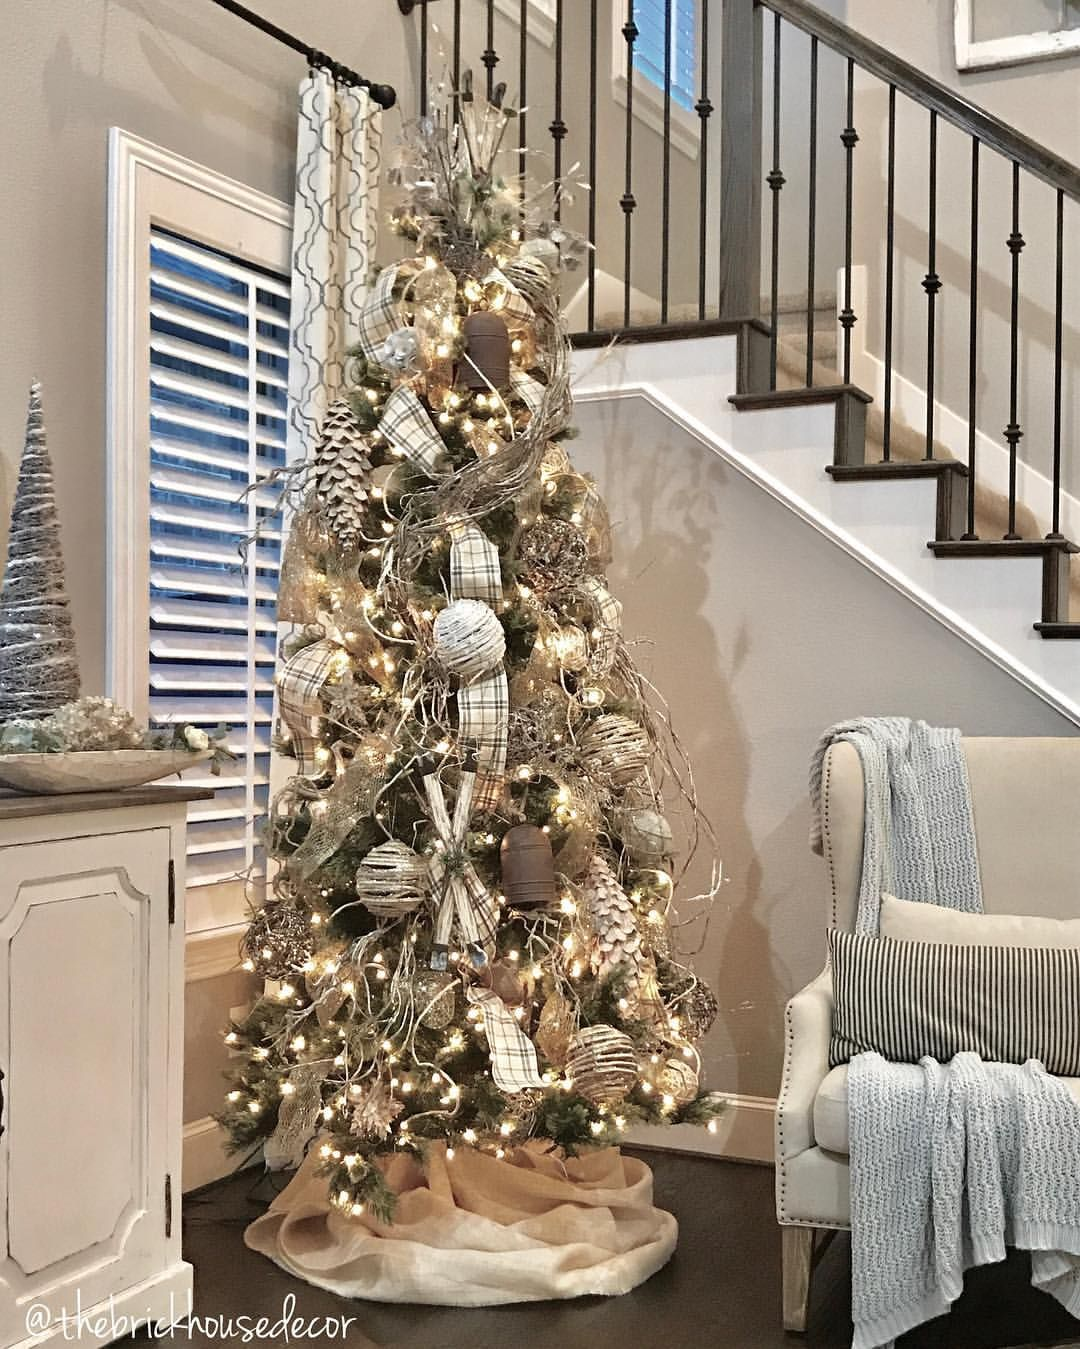 Christmas Tree Christmas Decor Christmas Inspo Christmas Tree Ideas Beautiful Christmas Trees Christmas Tree Decorations Beautiful Christmas